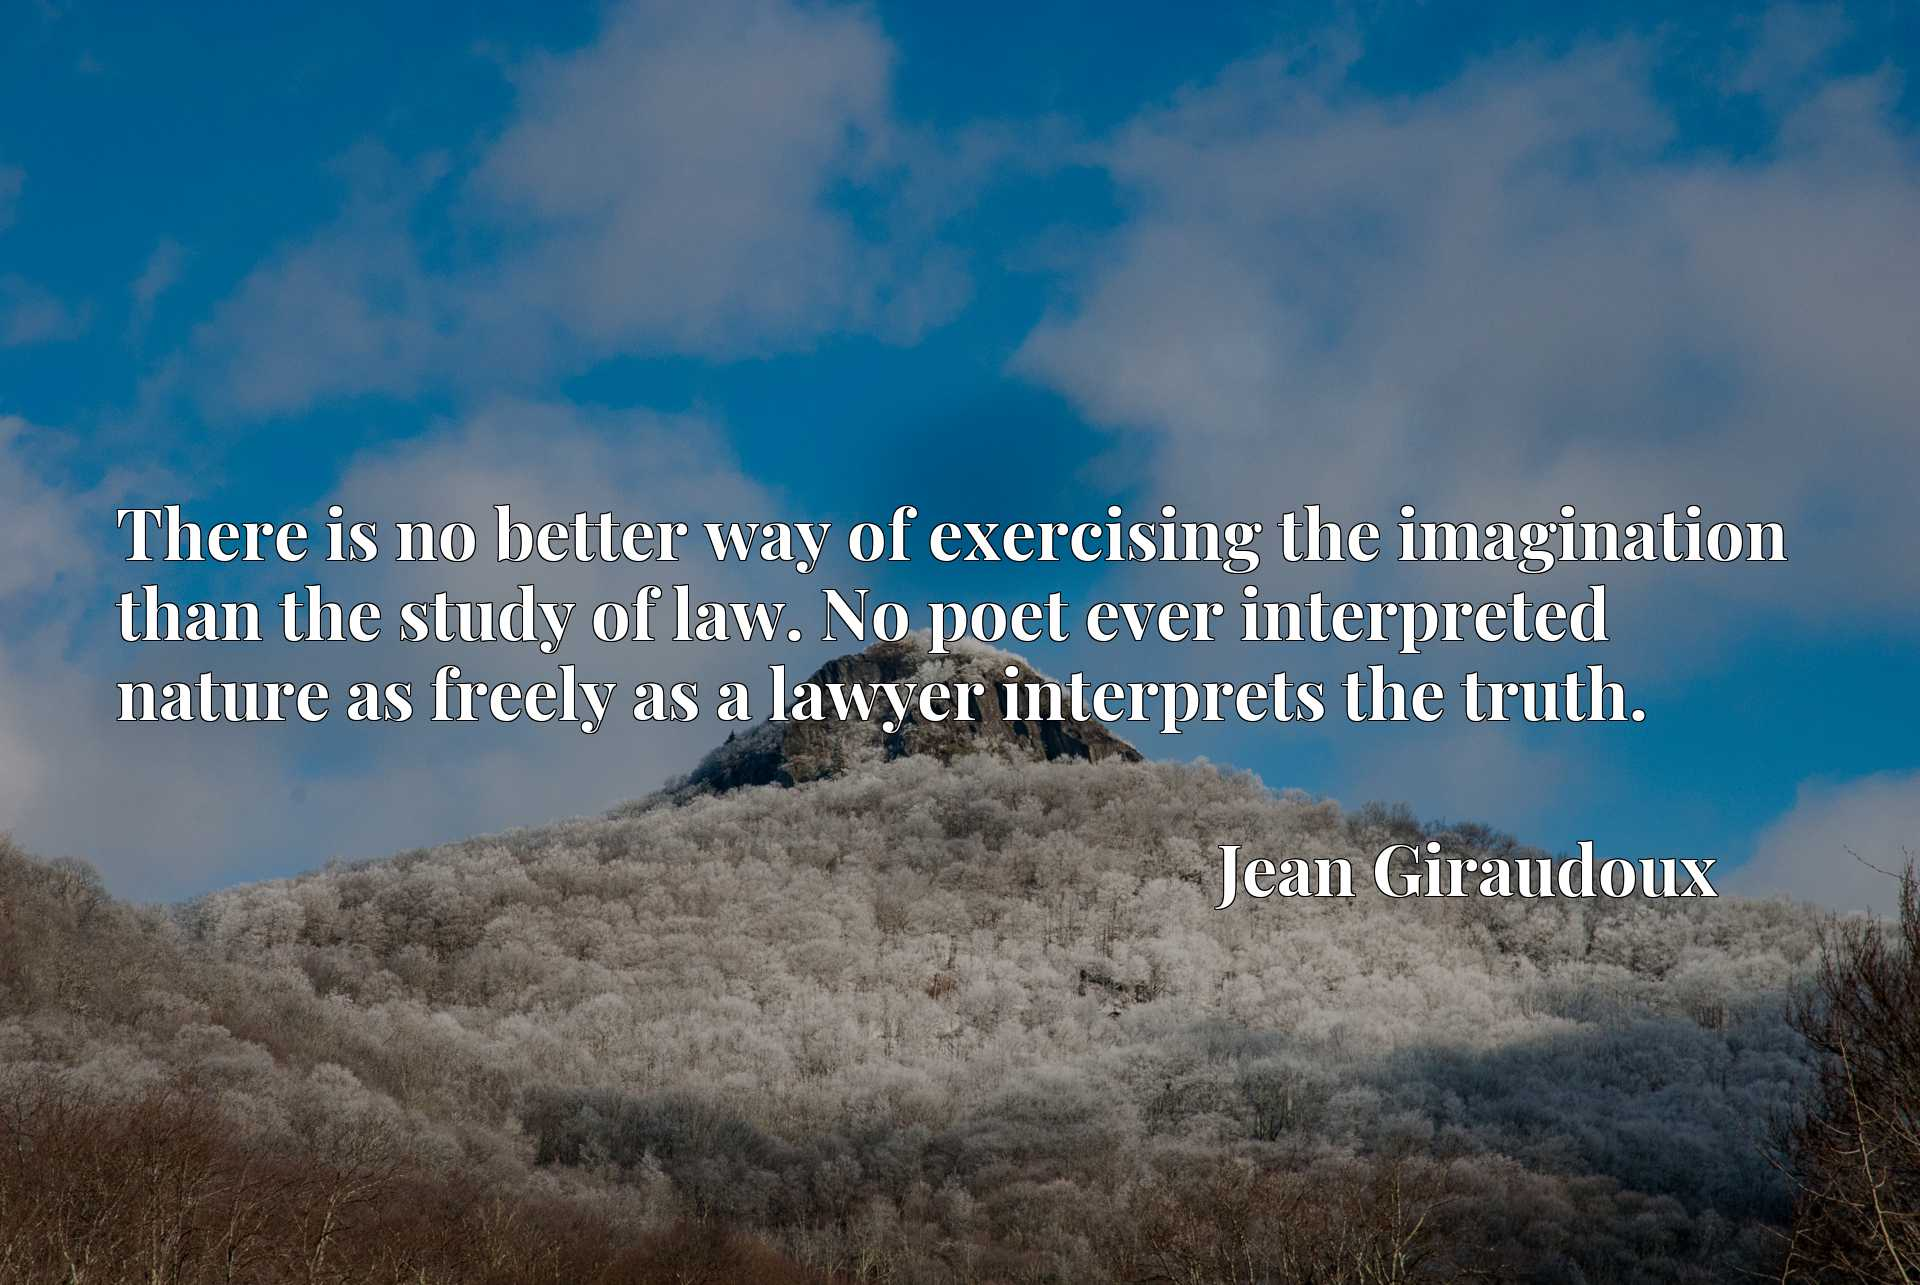 There is no better way of exercising the imagination than the study of law. No poet ever interpreted nature as freely as a lawyer interprets the truth.